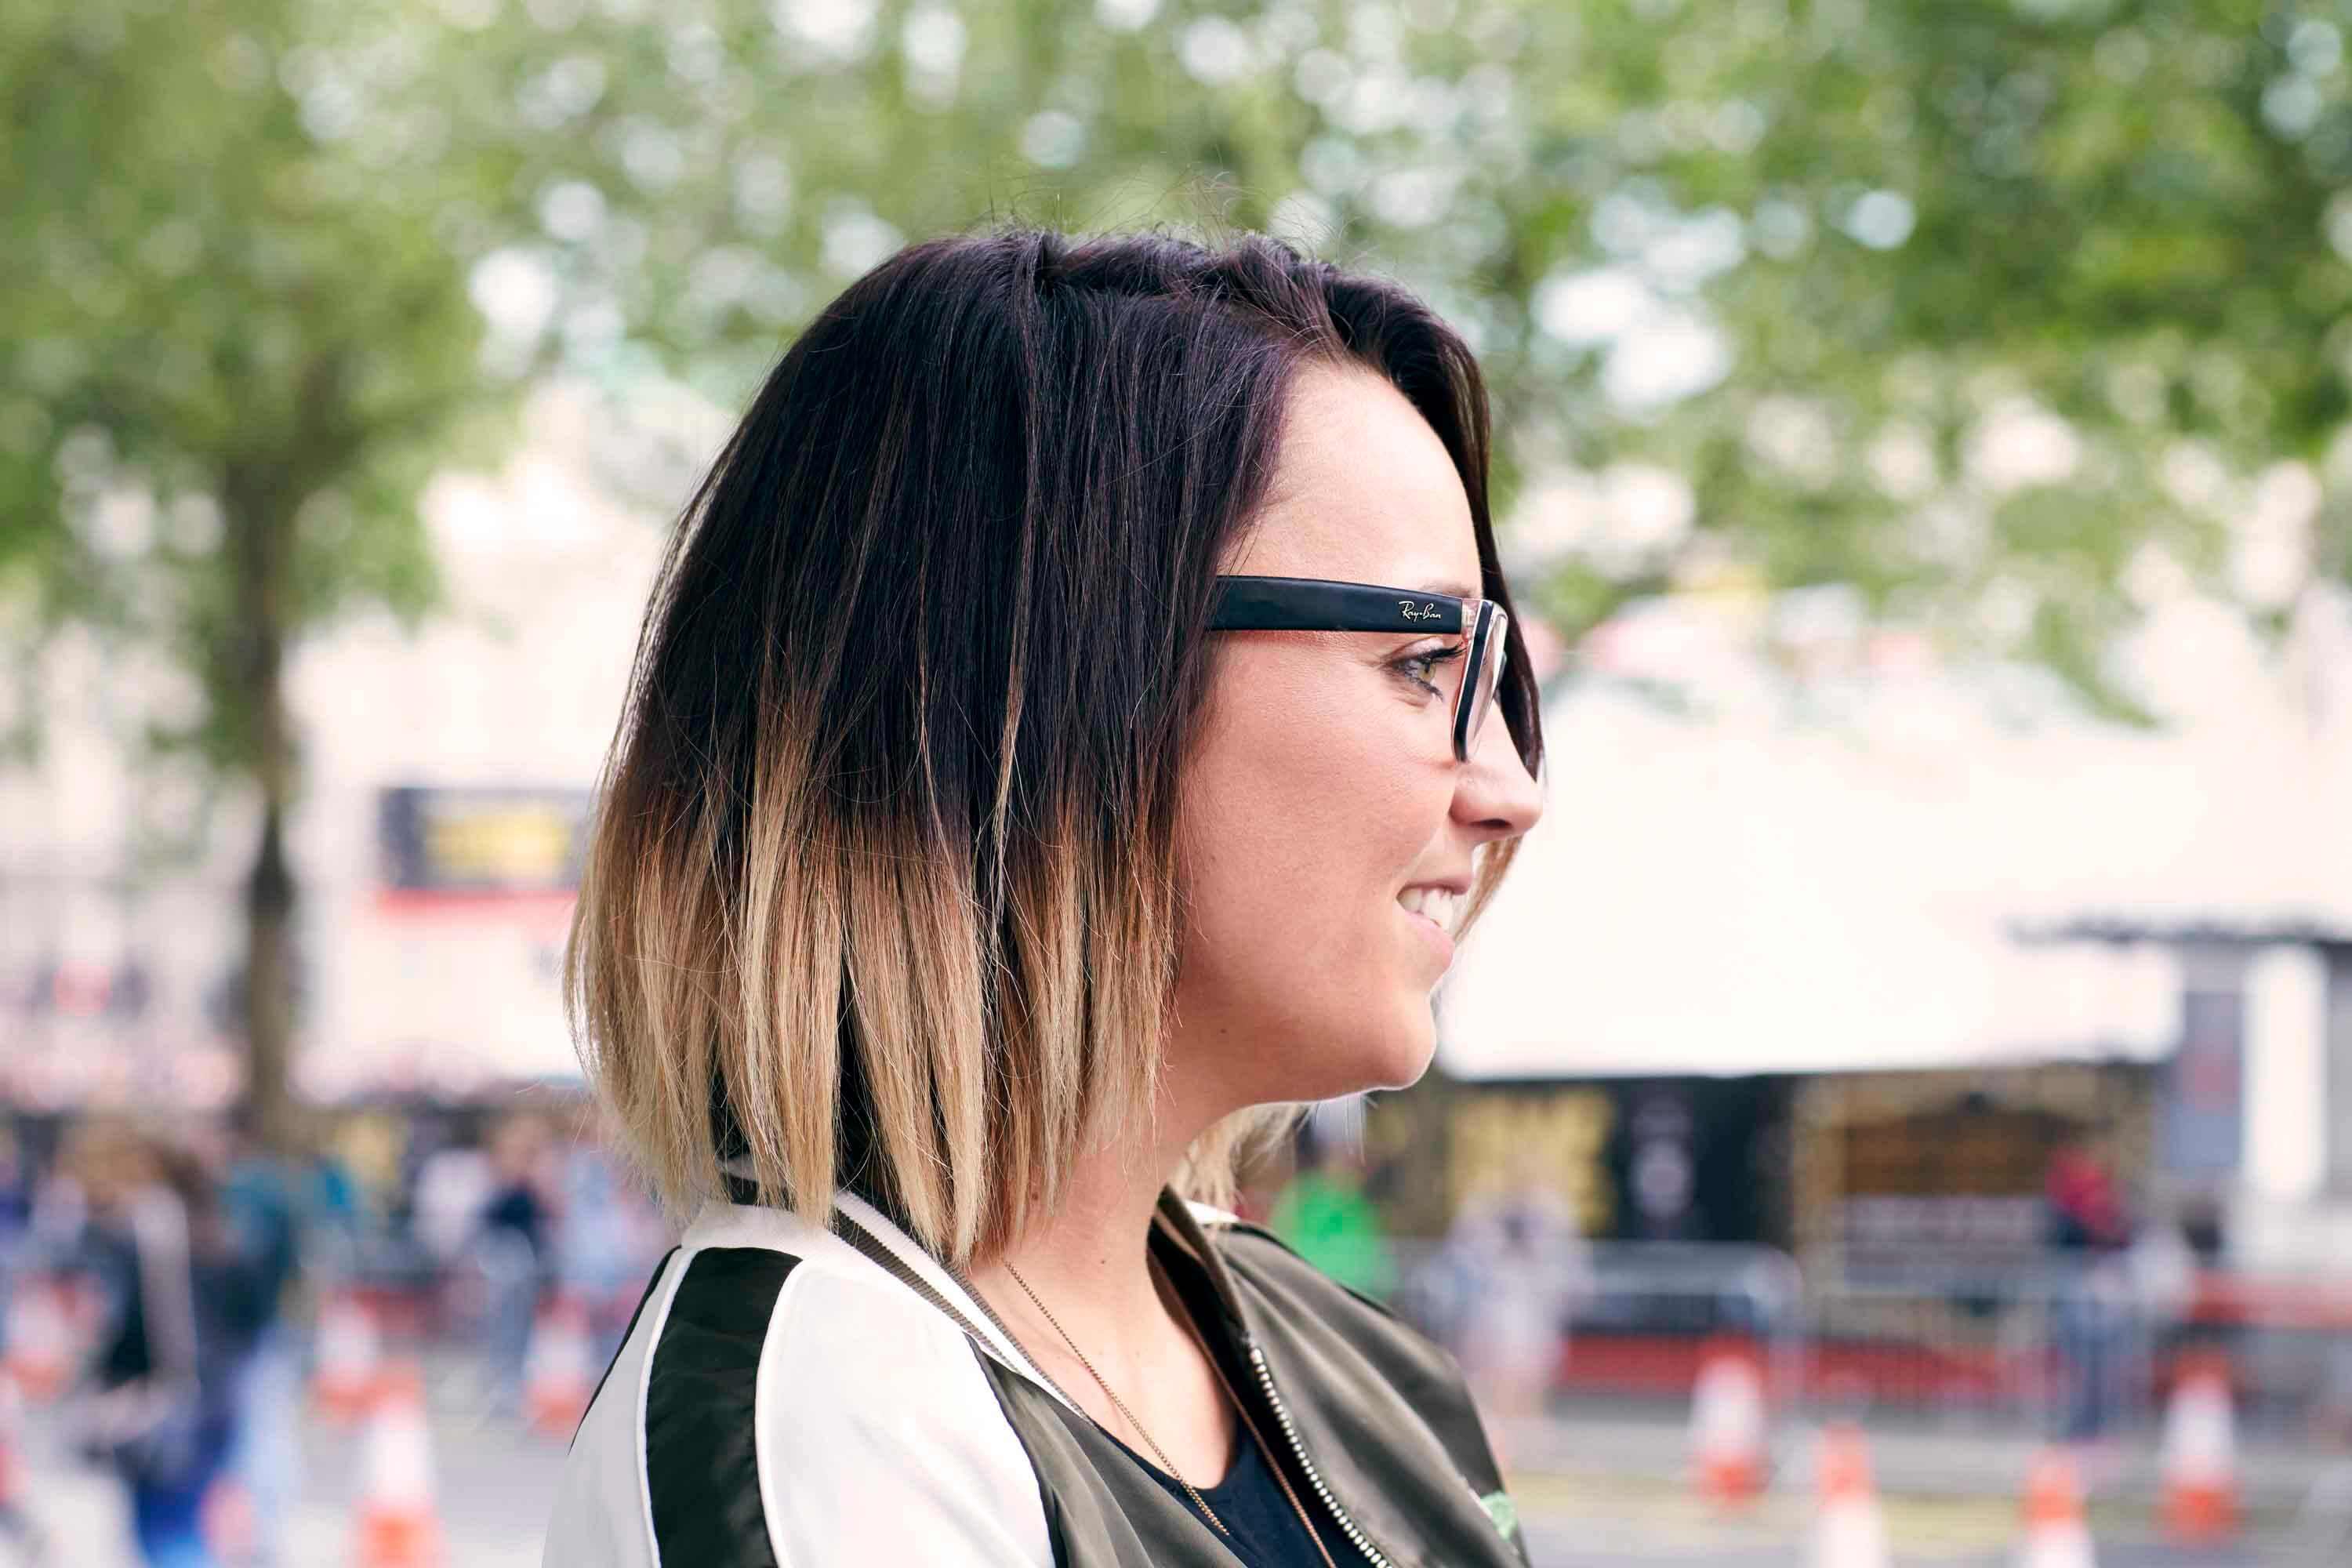 Short Ombre Hair 5 Street Style Savvy Ways To Wear The Look